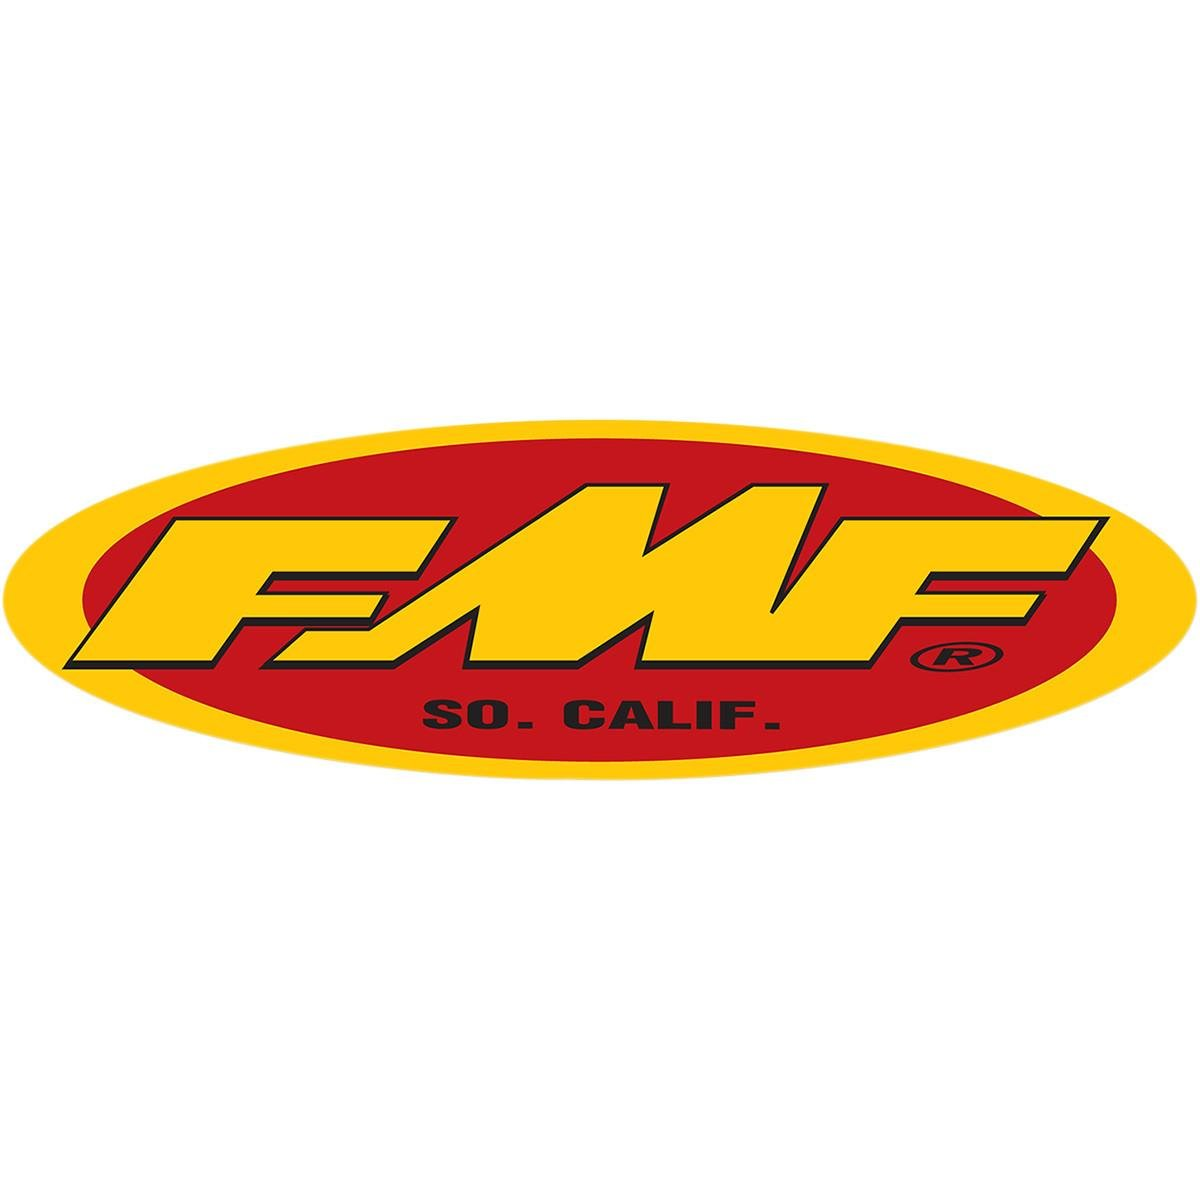 FMF Racing Trailer Stickers - Large 010594